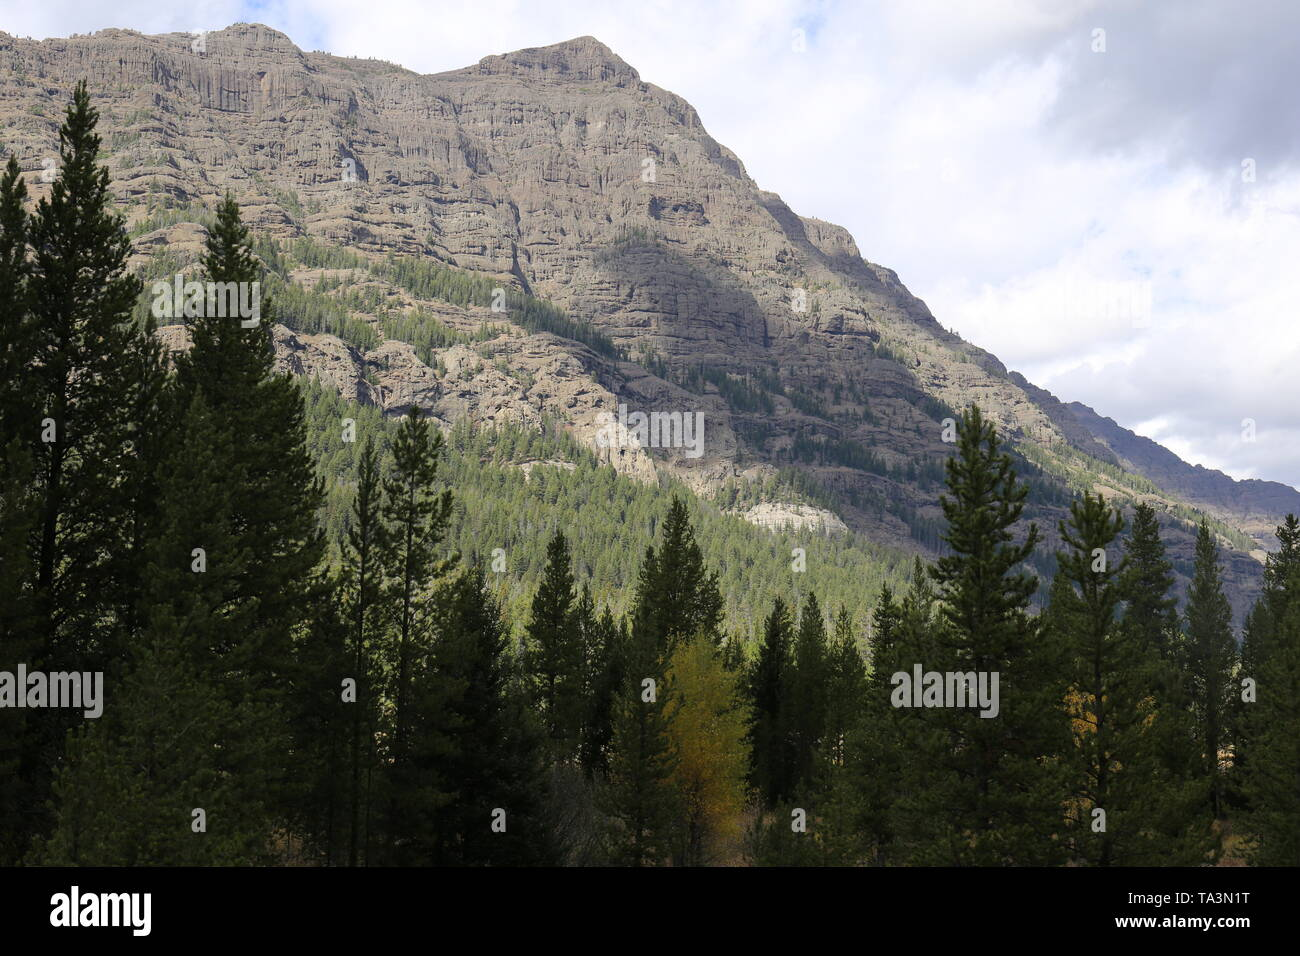 Steep mountain with evergreen trees in foreground - Stock Image